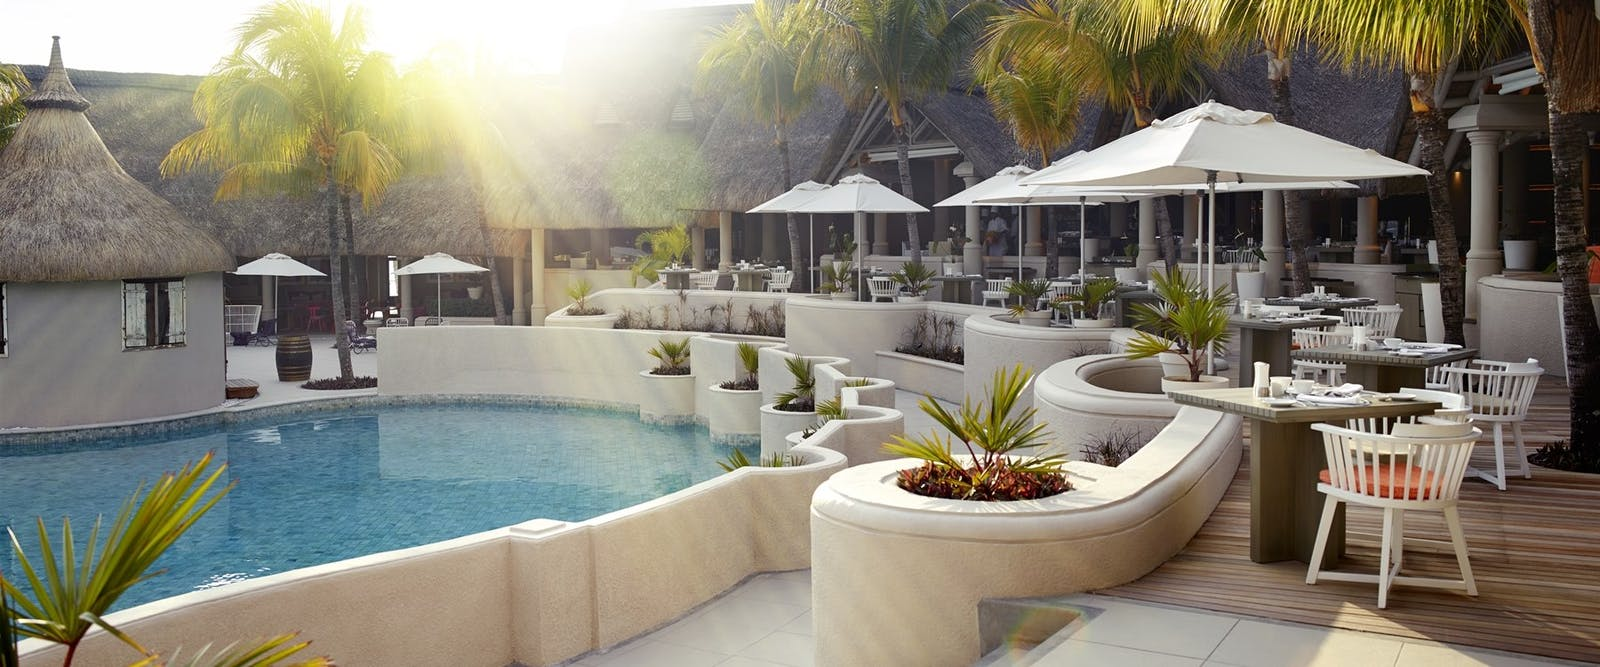 Pool Restaurant at LUX* Belle Mare, Mauritius